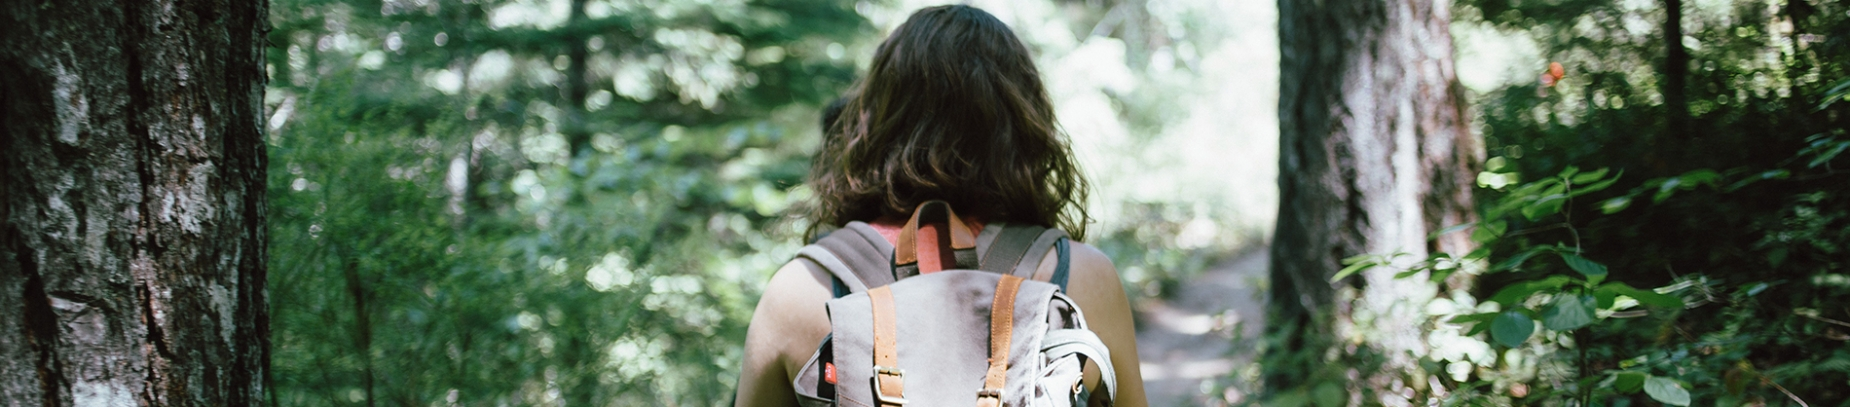 A women with a backpack walking through a forest